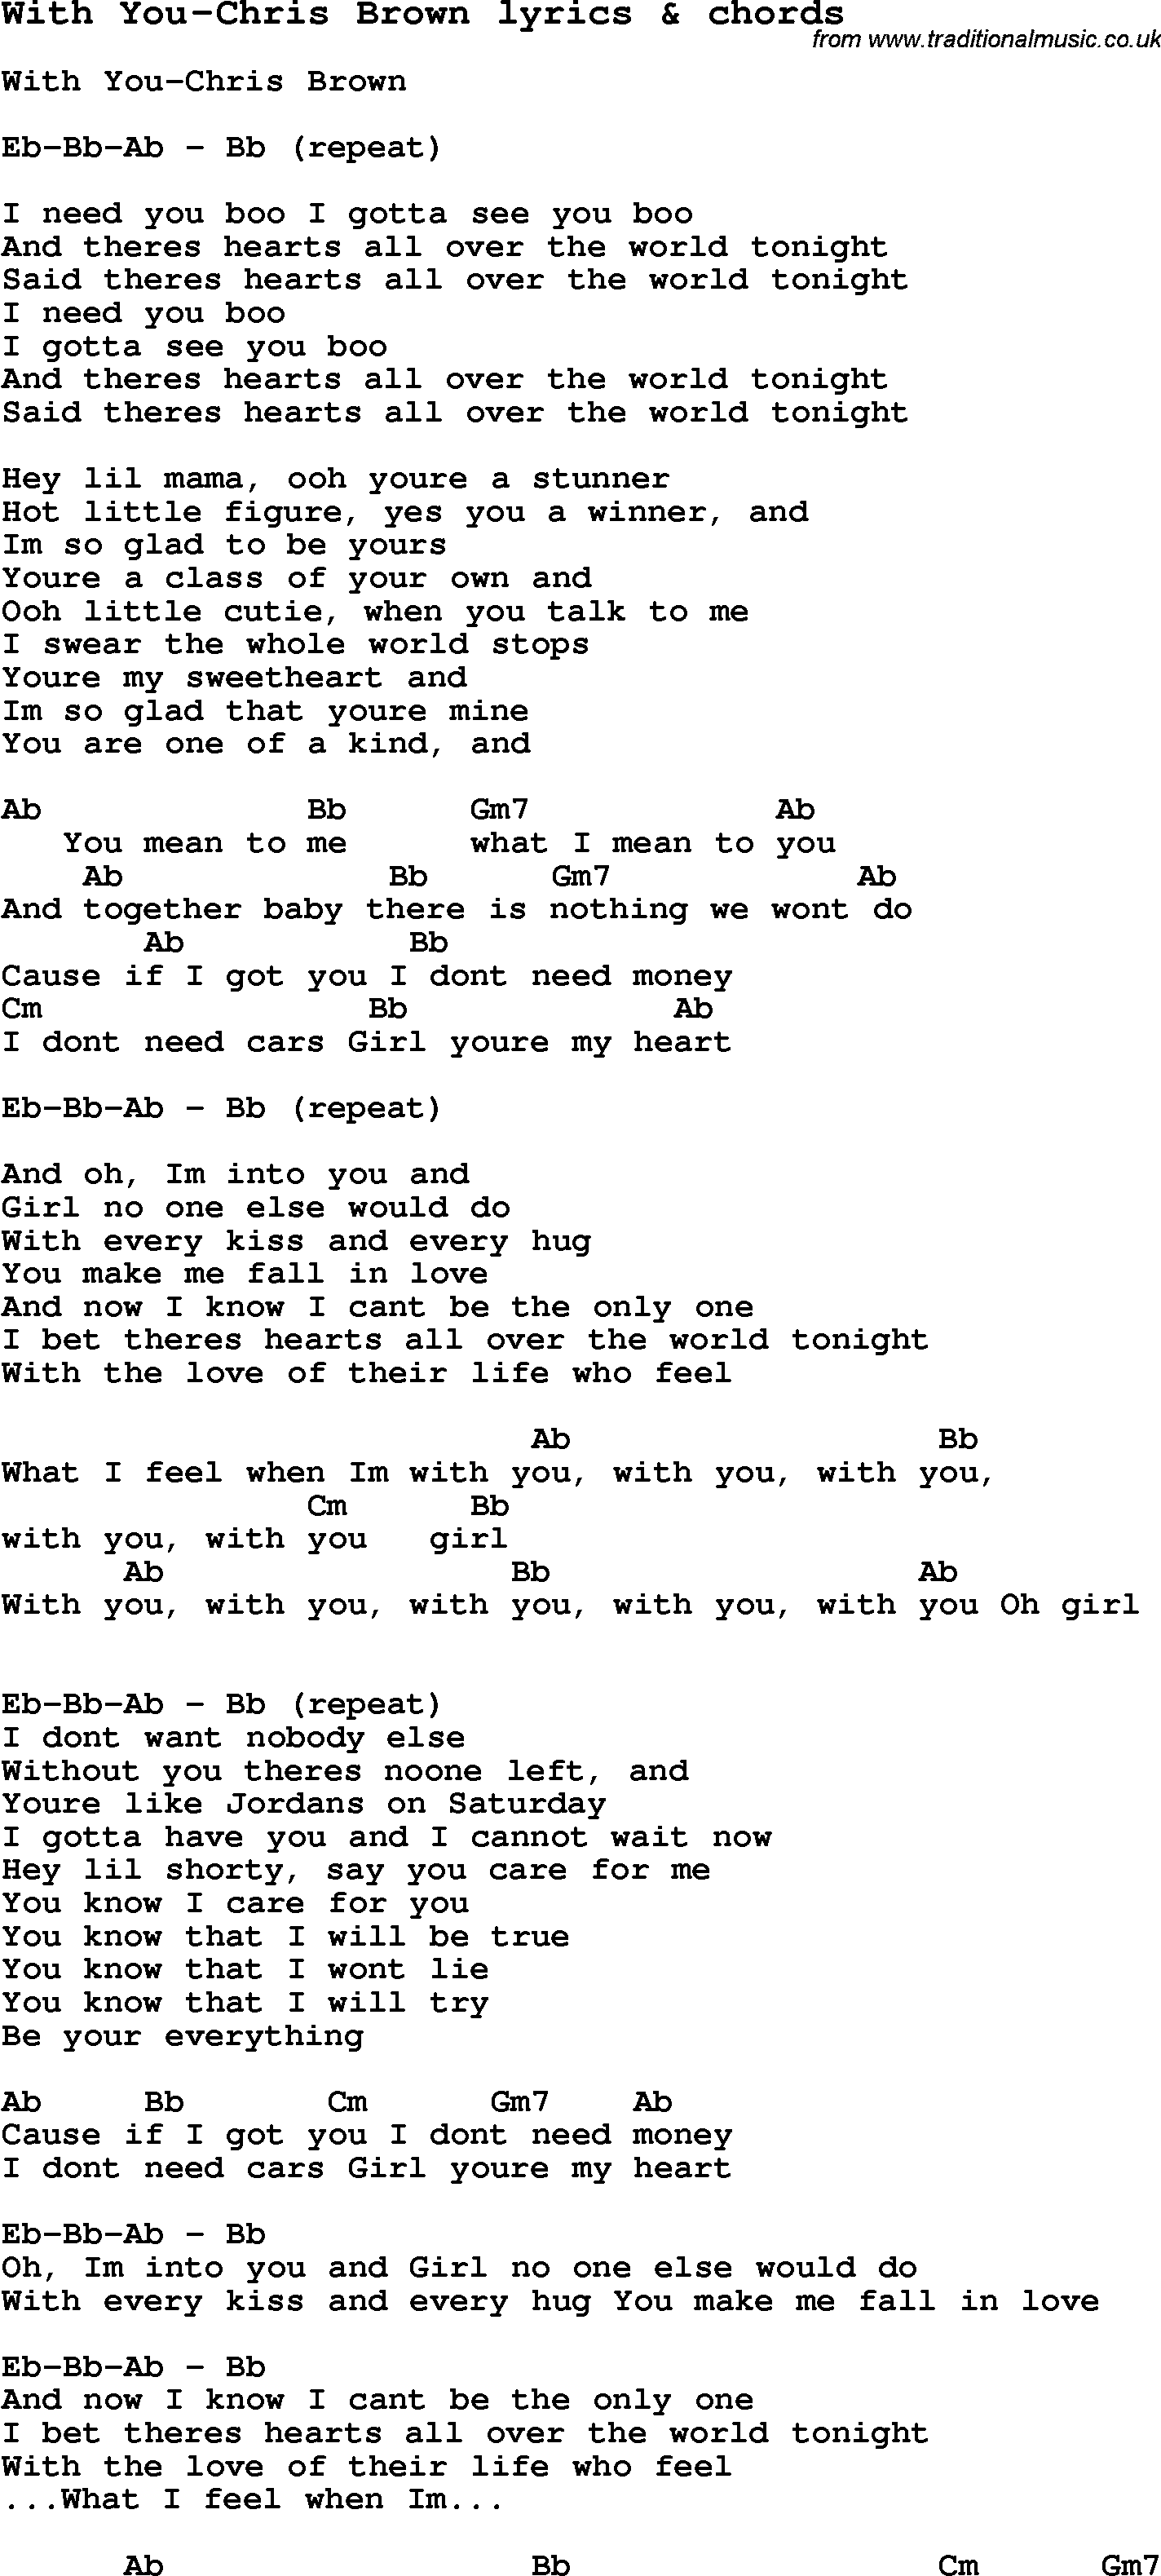 Love Song Lyrics for:With You-Chris Brown with chords.